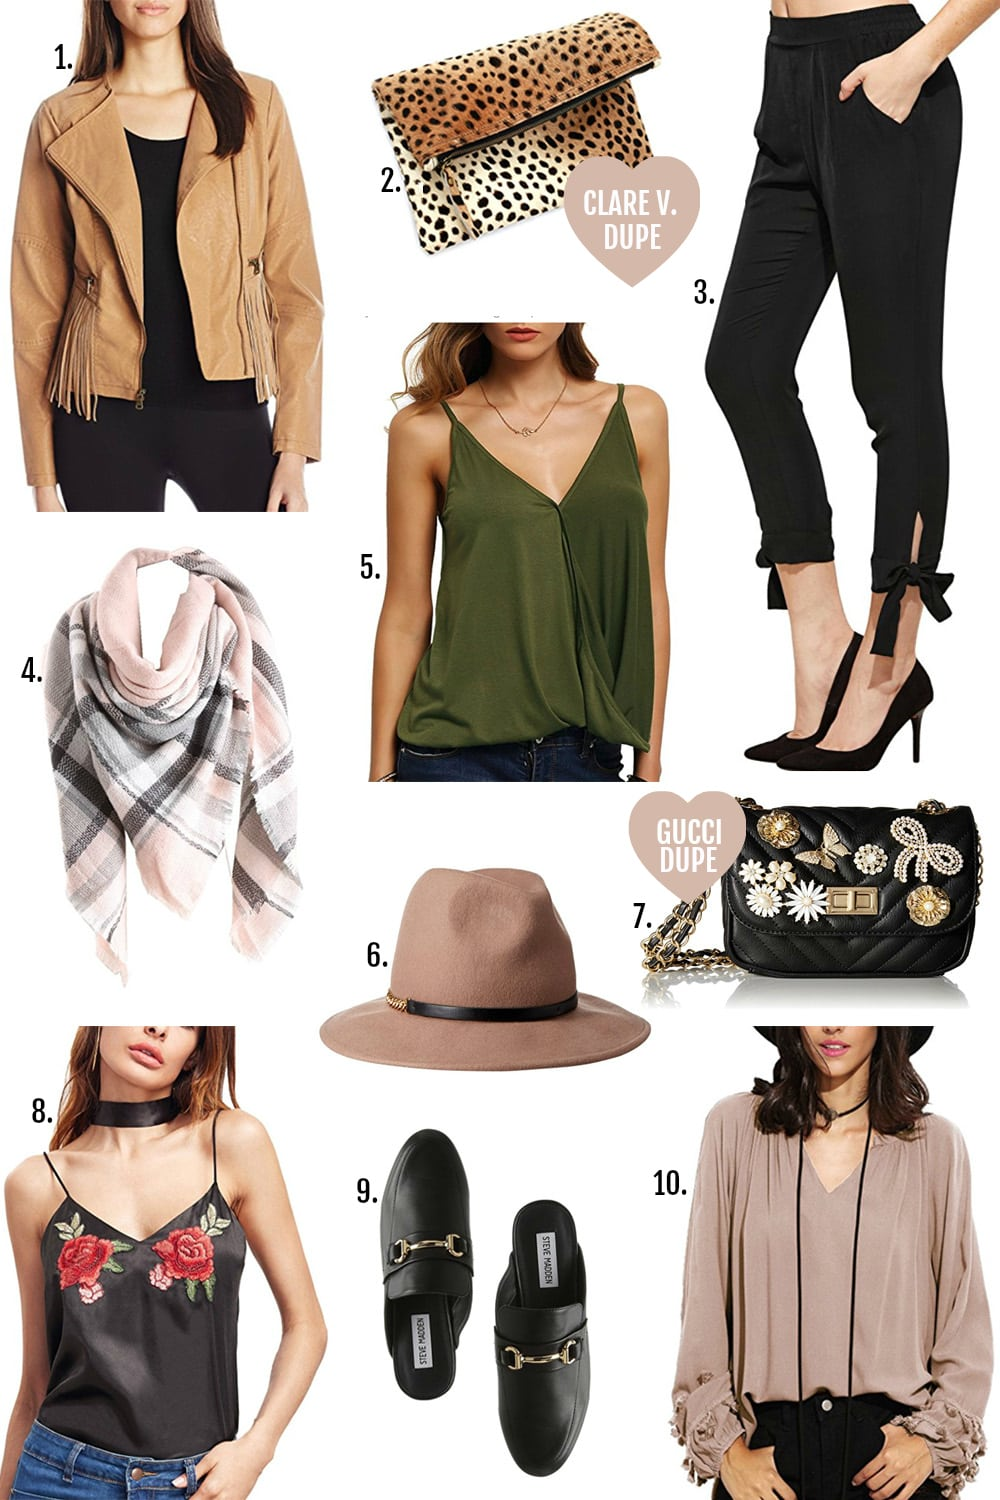 Amazon Fall fashion finds under $100 | Mash Elle fashion blogger | Gucci designer bag dupe | Chloe designer bag dupe | over the knee boots | affordable style for women | flattering trench coat | skinny ripped jeans for less | clothing for curvy girls | designer fashion dupe  | Gucci bag dupe